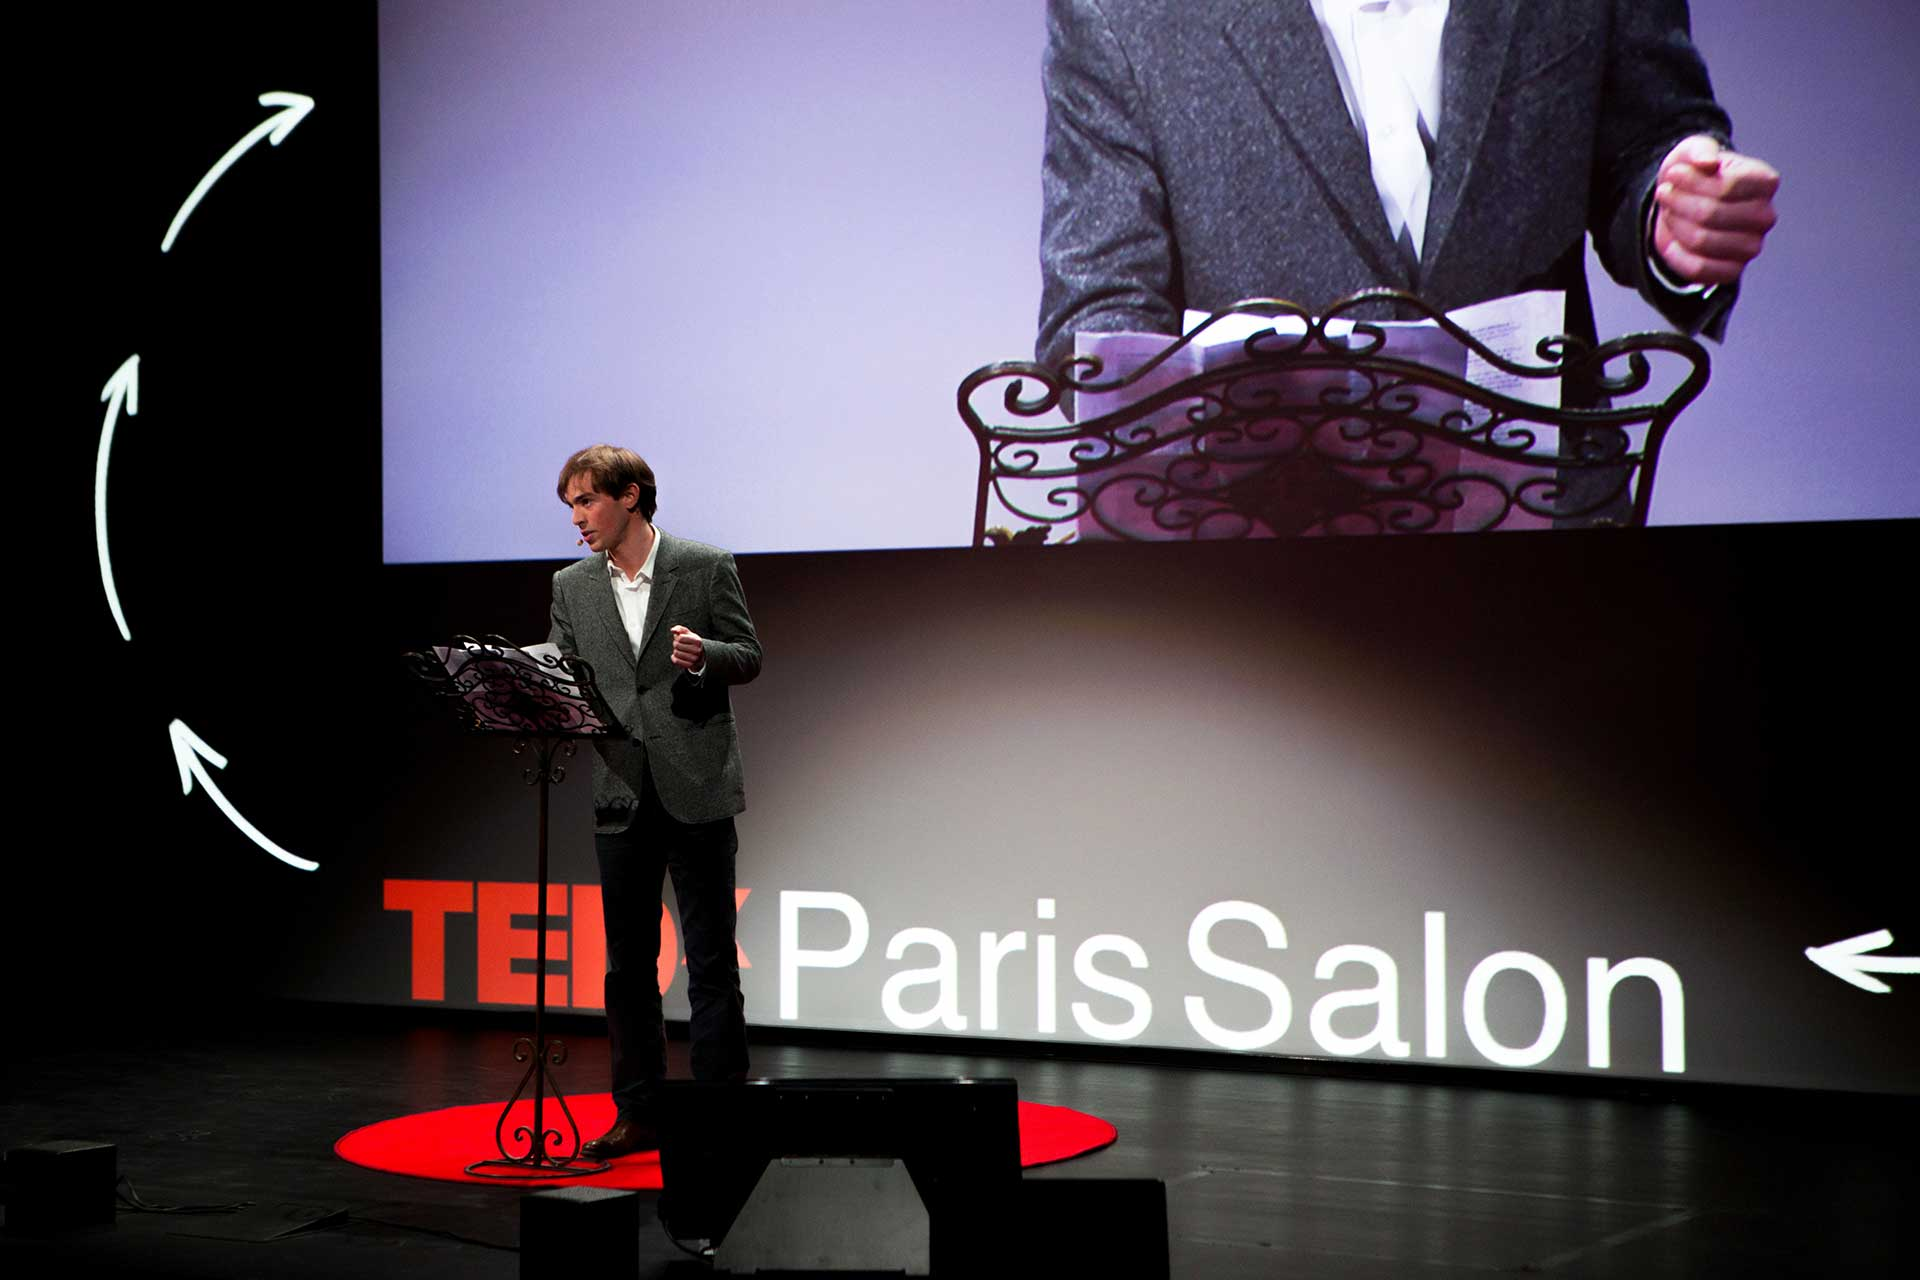 conference-TEDxParisSalon-2019-10.jpg